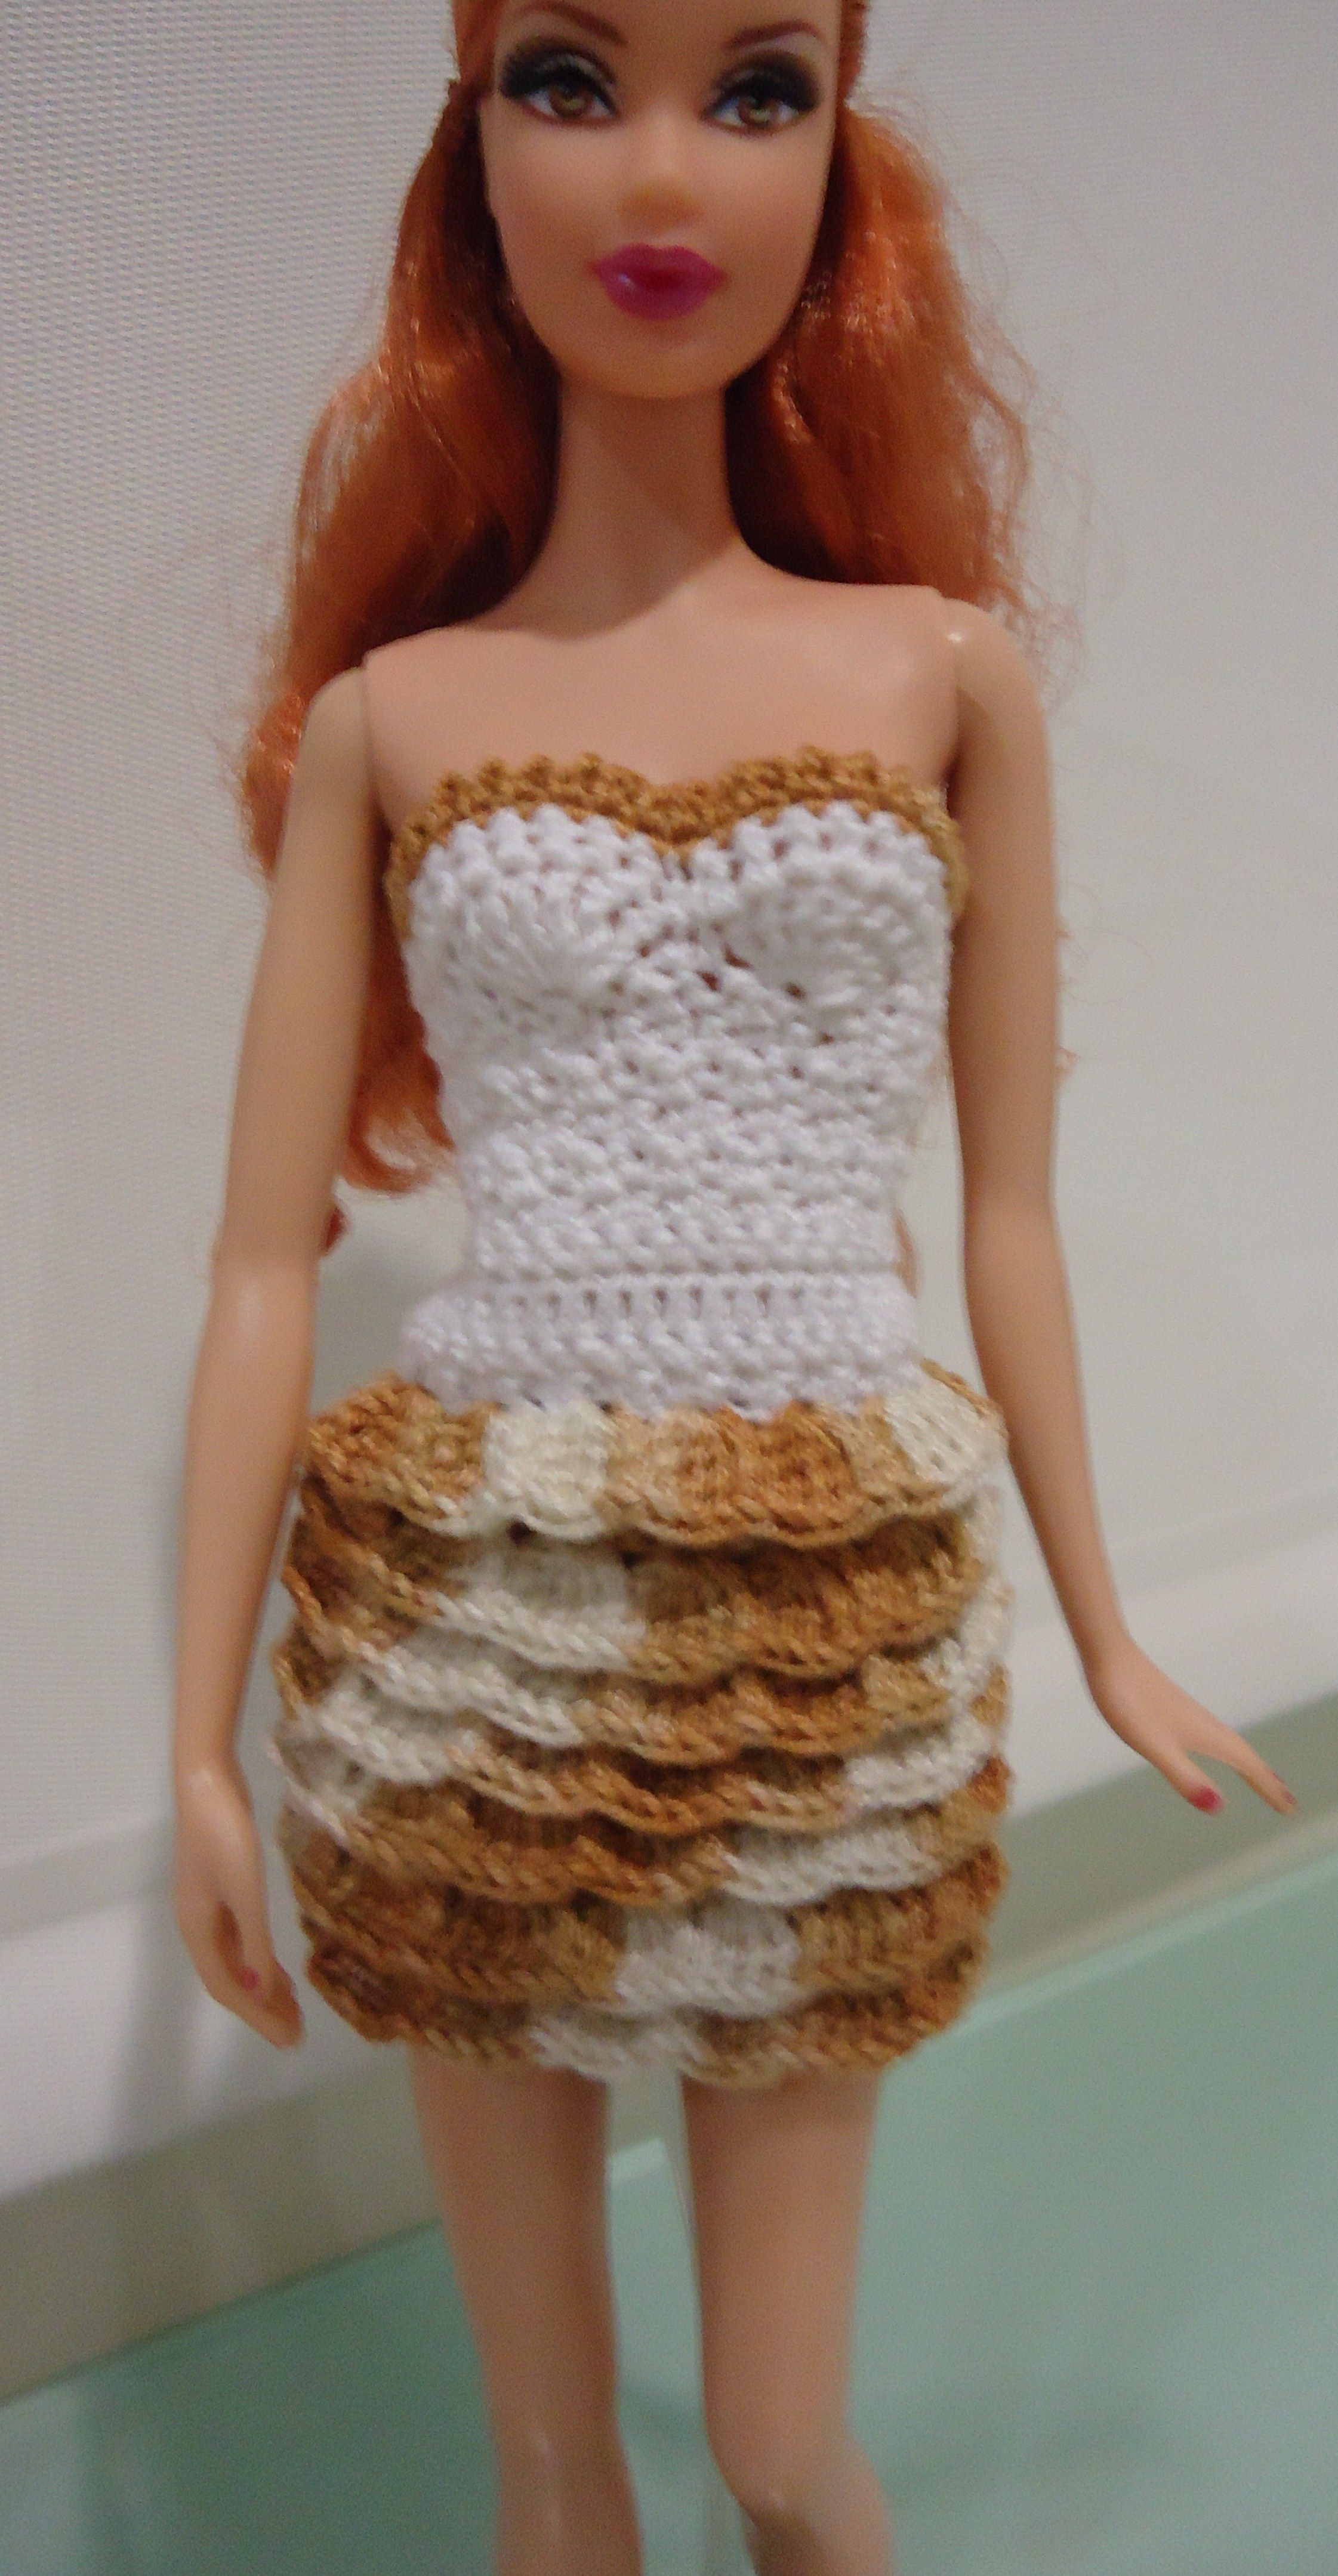 Crochet clothes for your barbie doll tips and free patterns crochet clothes for your barbie doll tips and free patterns bankloansurffo Choice Image